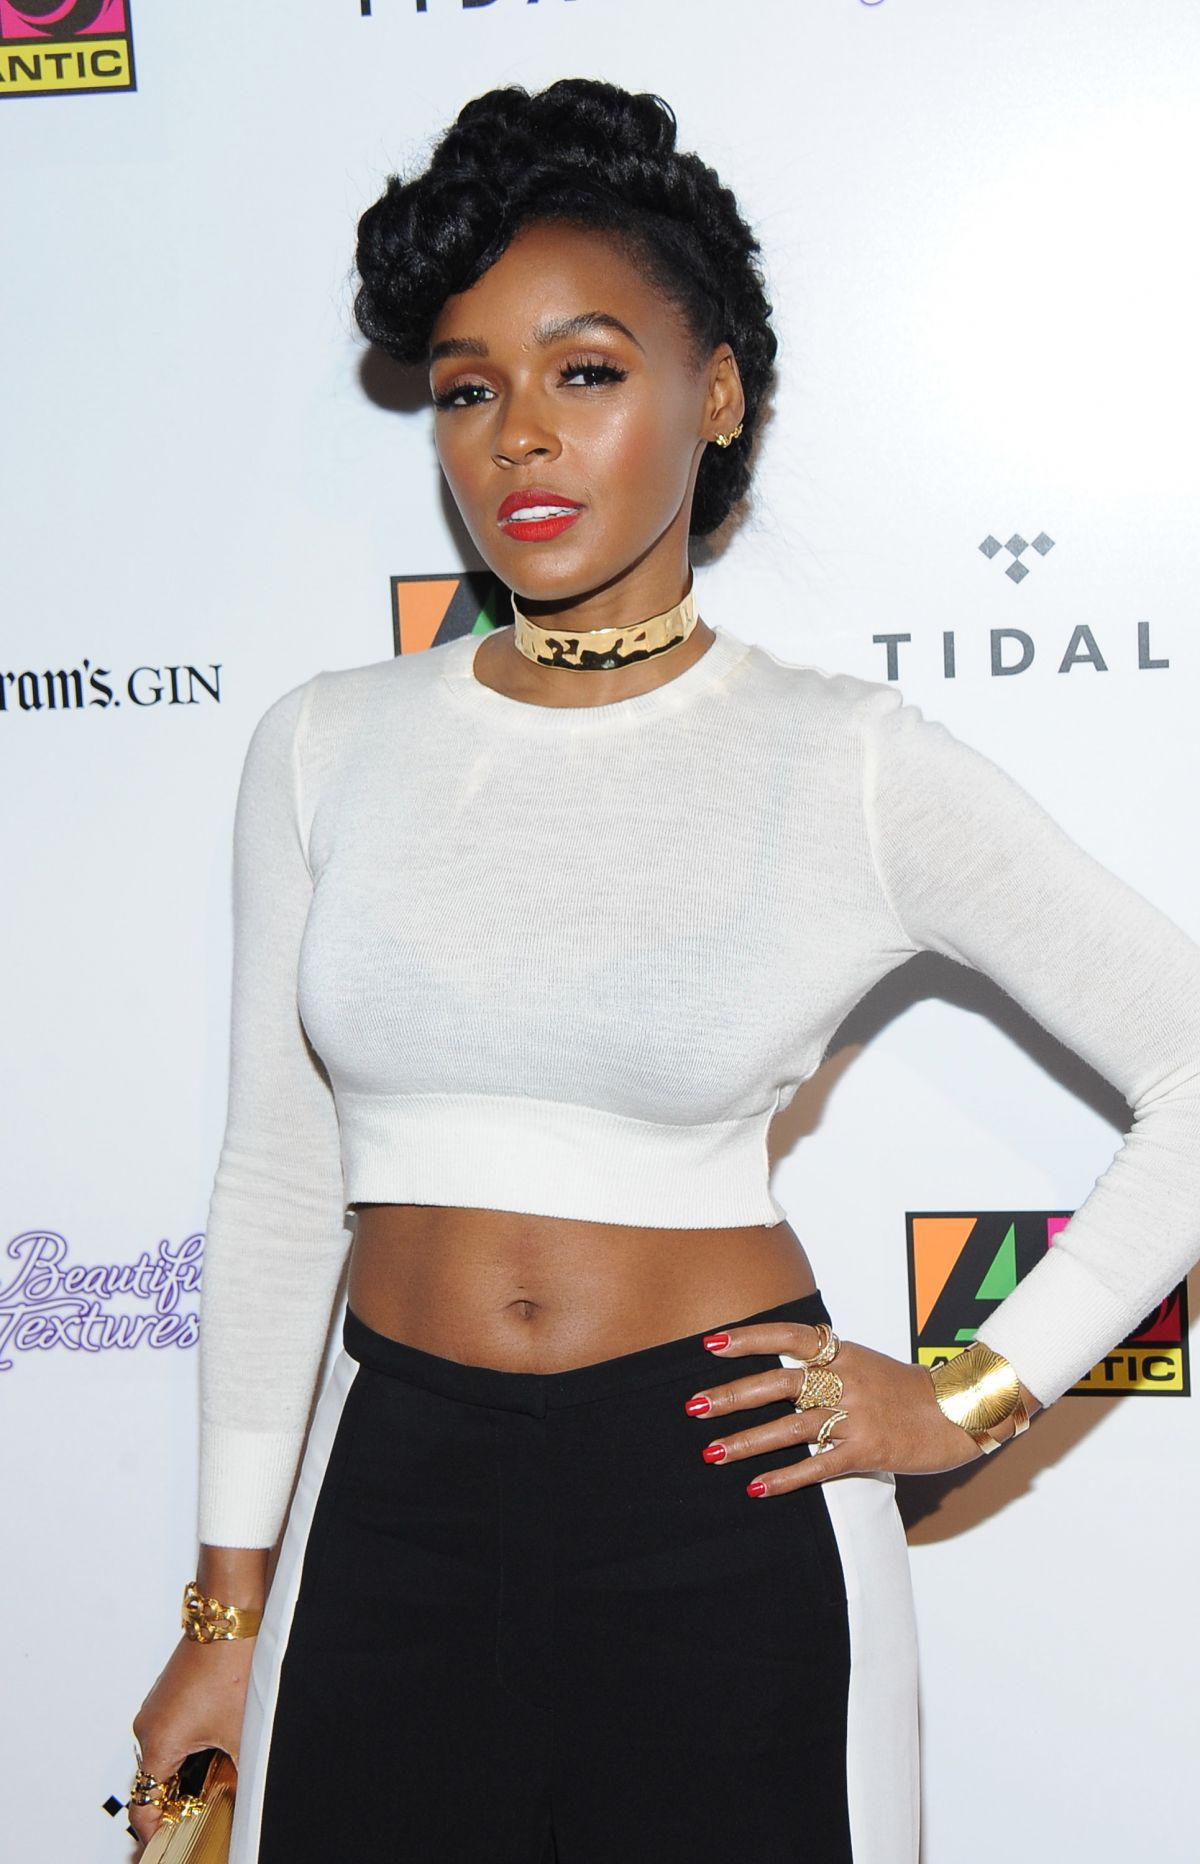 JANELLE MONAE at Atlantic Records BET Awards Afterparty in ...